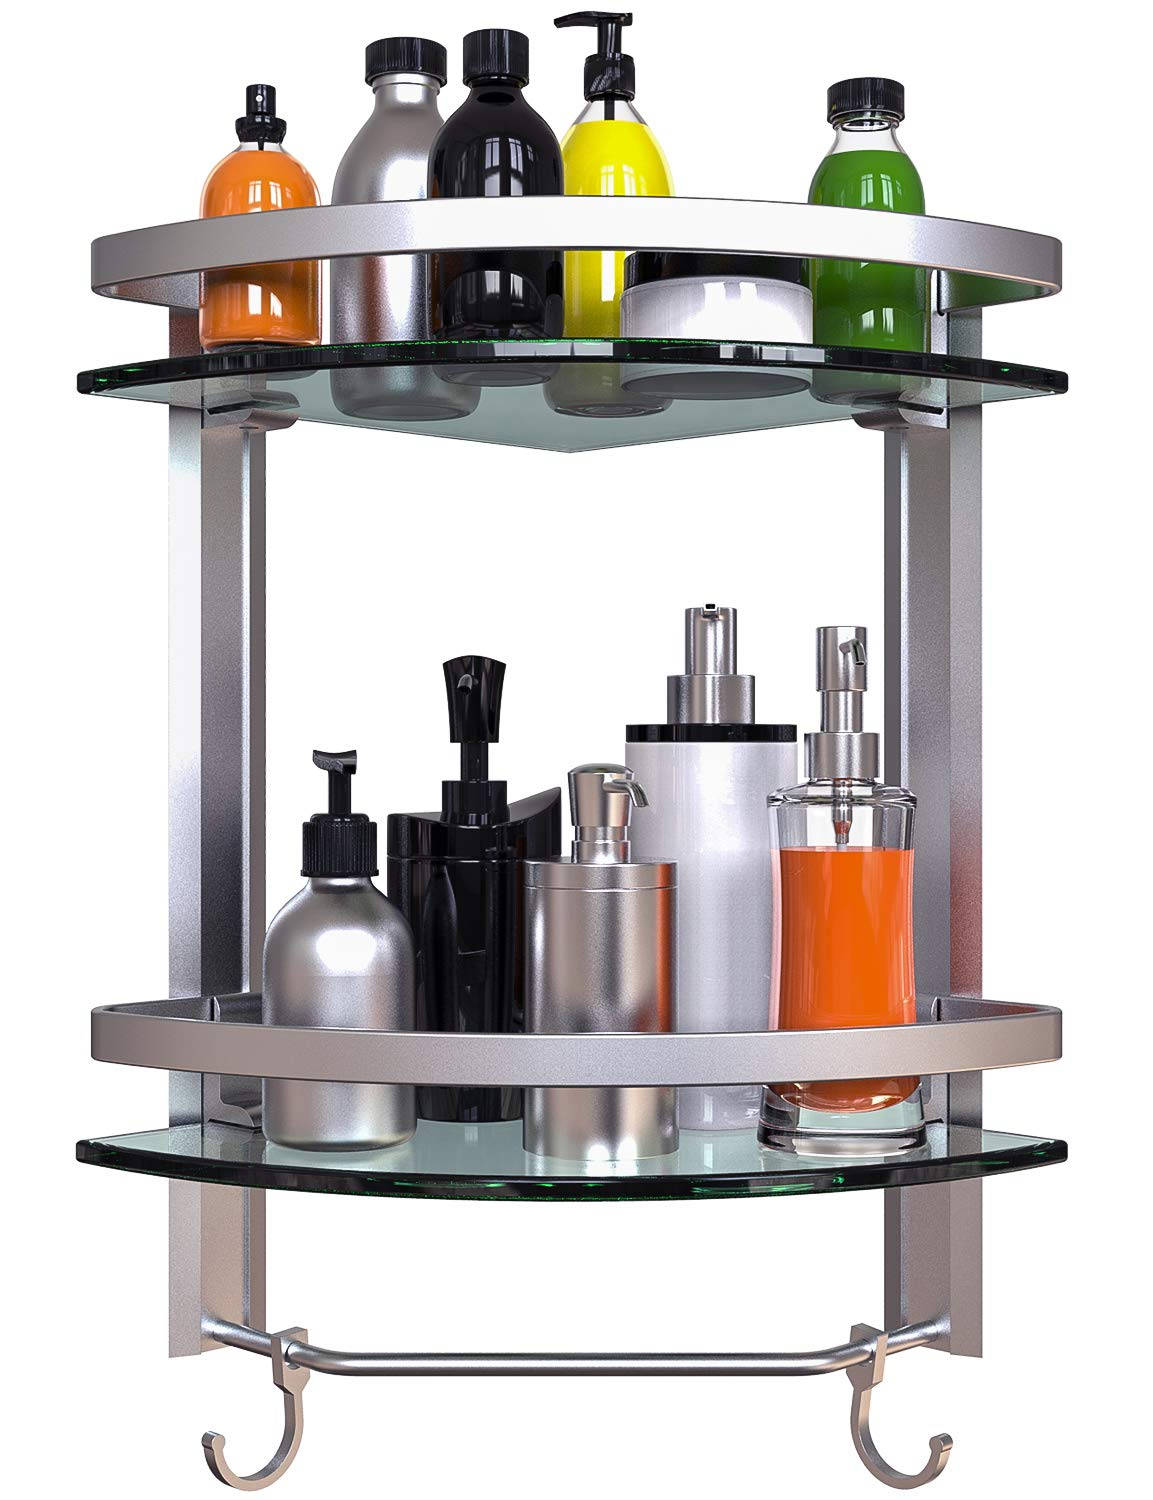 Vdomus Bathroom Tempered Glass Corner Shelf, 2 Tier Shower Shelve with Towel Bar Wall Mounted, Brushed Silver Finished. (2 Tier Glass Shelf)